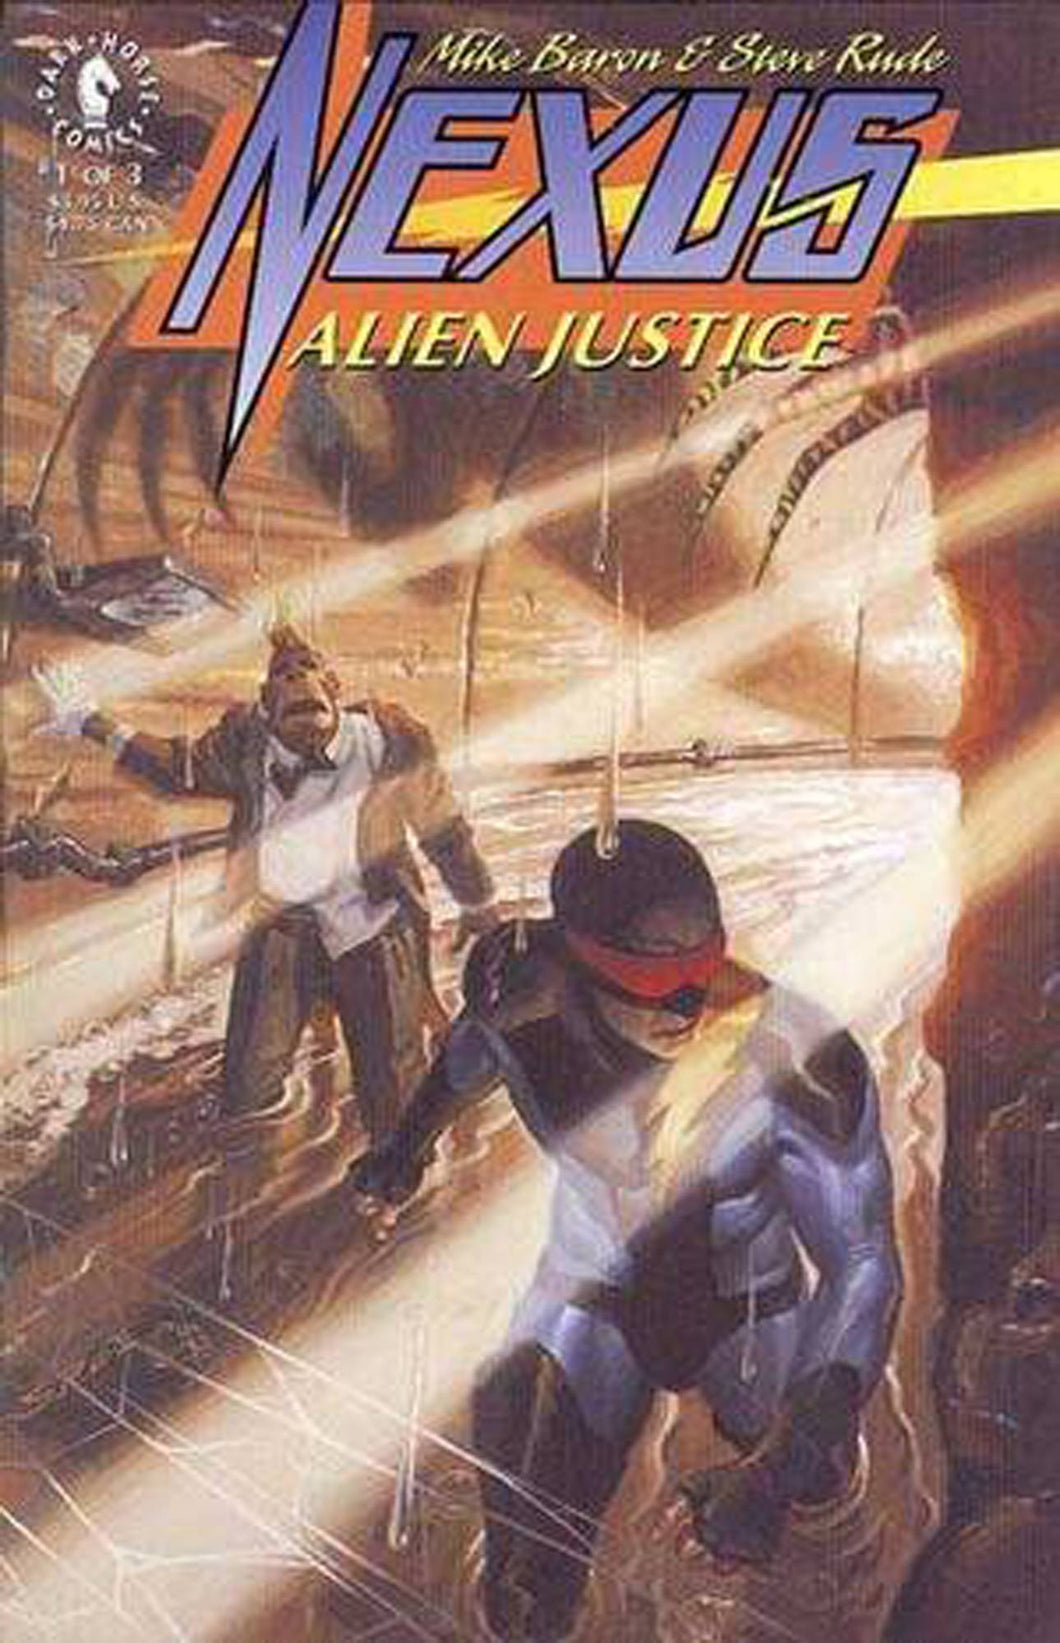 NEXUS: ALIEN JUSTICE #1-3 (Dark Horse 1992) COMPLETE SET